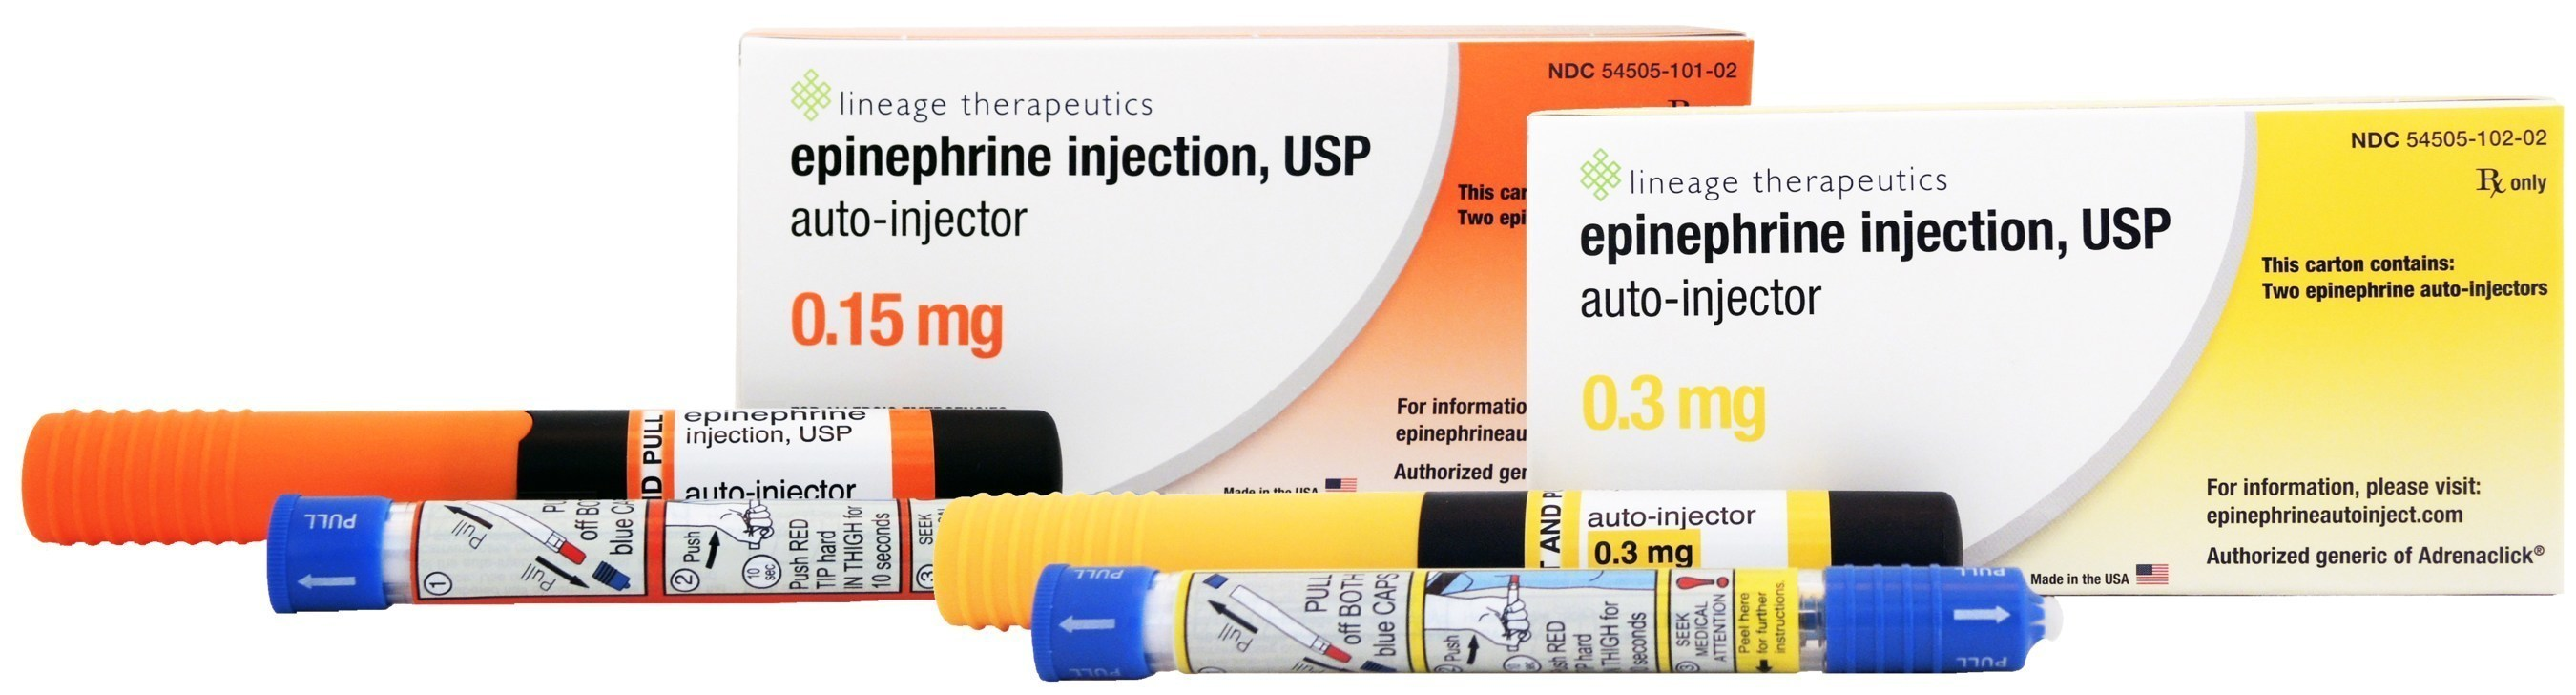 Epinephrine Injection, USP Auto-Injector, 0.15 mg and 0.3 mg, the authorized generic to Adrenaclick(R), is currently available in pharmacies across the United States